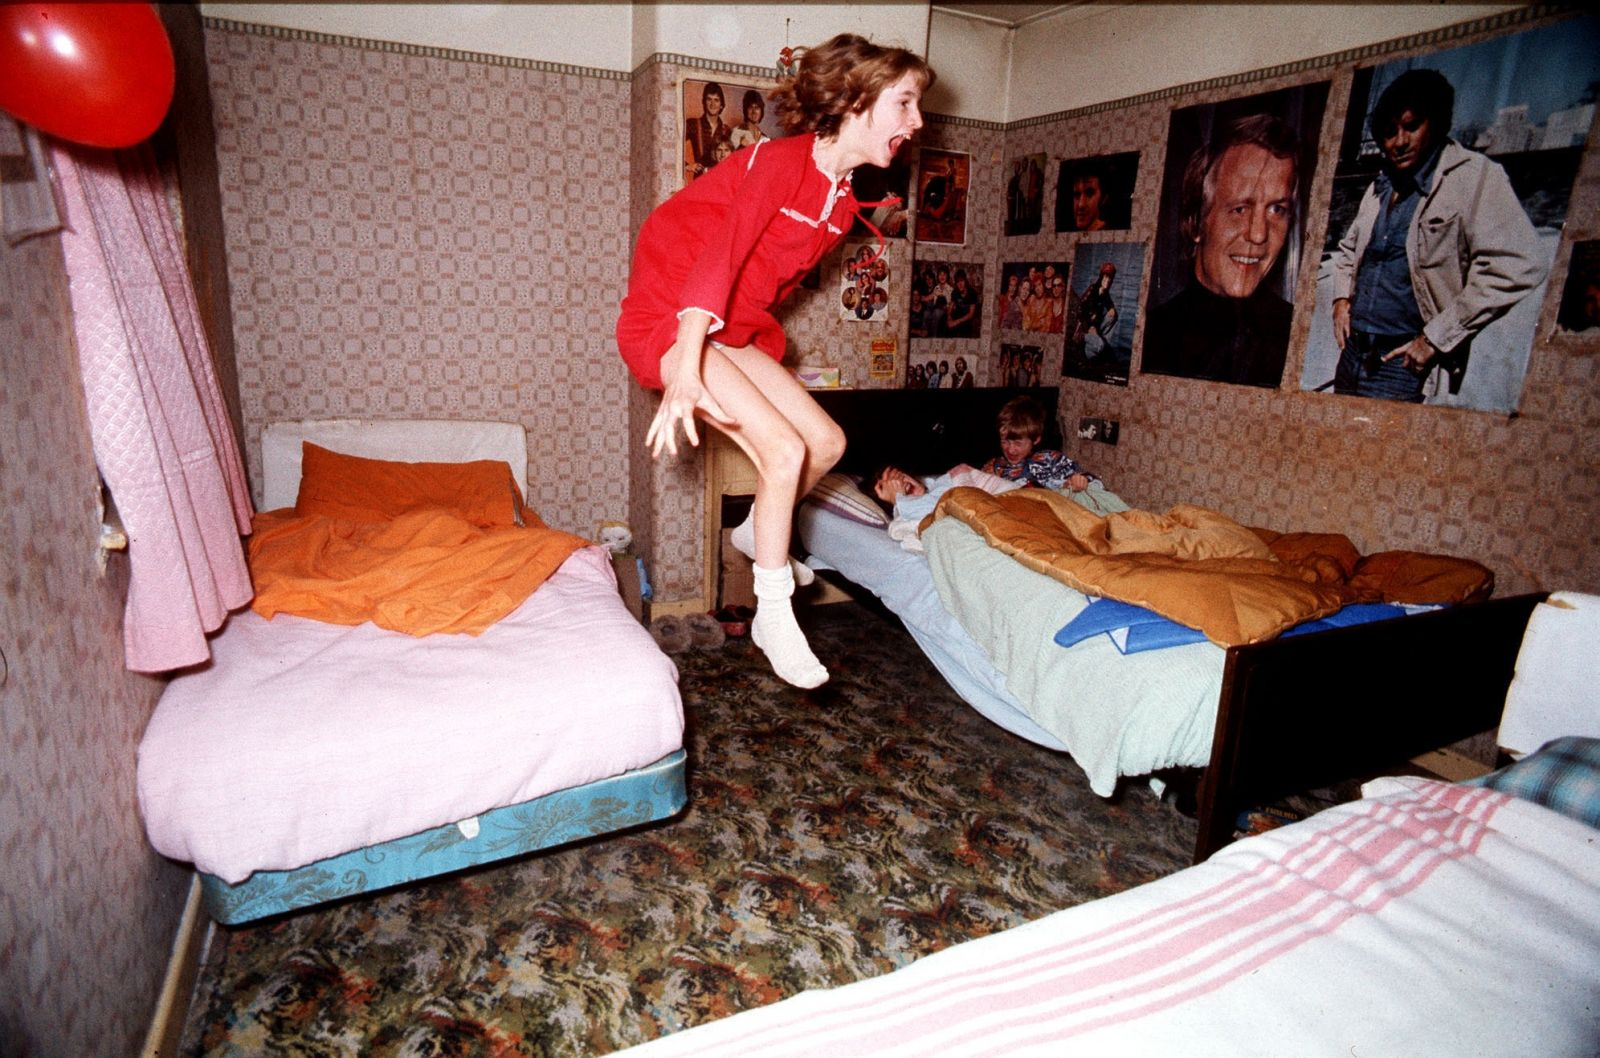 Enfield poltergeist: one of the most famous and mysterious paranormal phenomena, is still considered a mystery 102